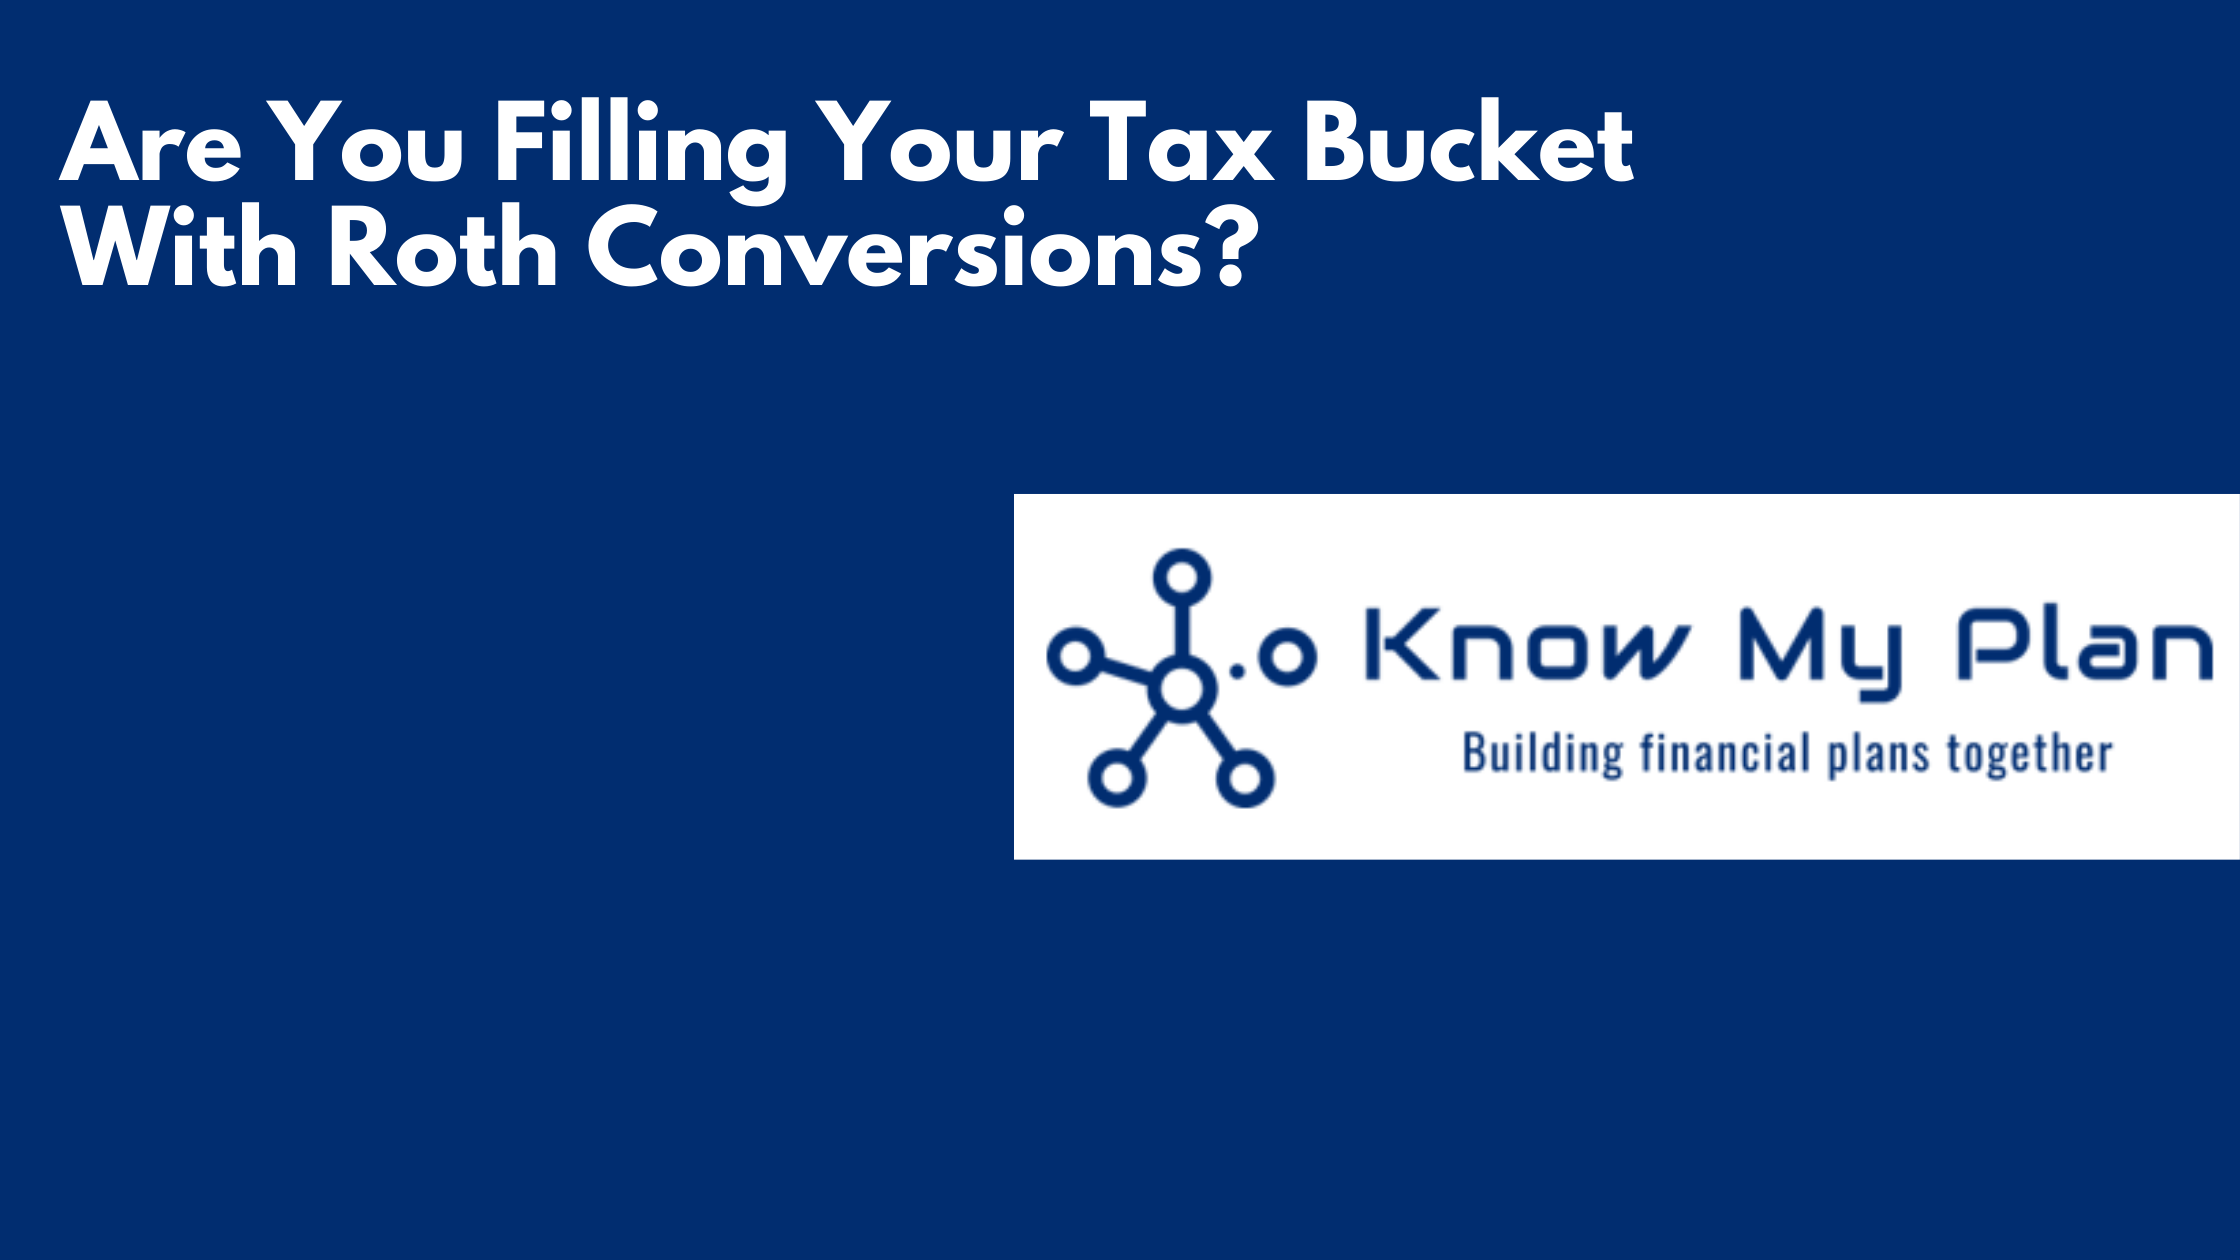 Are You Filling Your Tax Bucket With Roth Conversions? Thumbnail